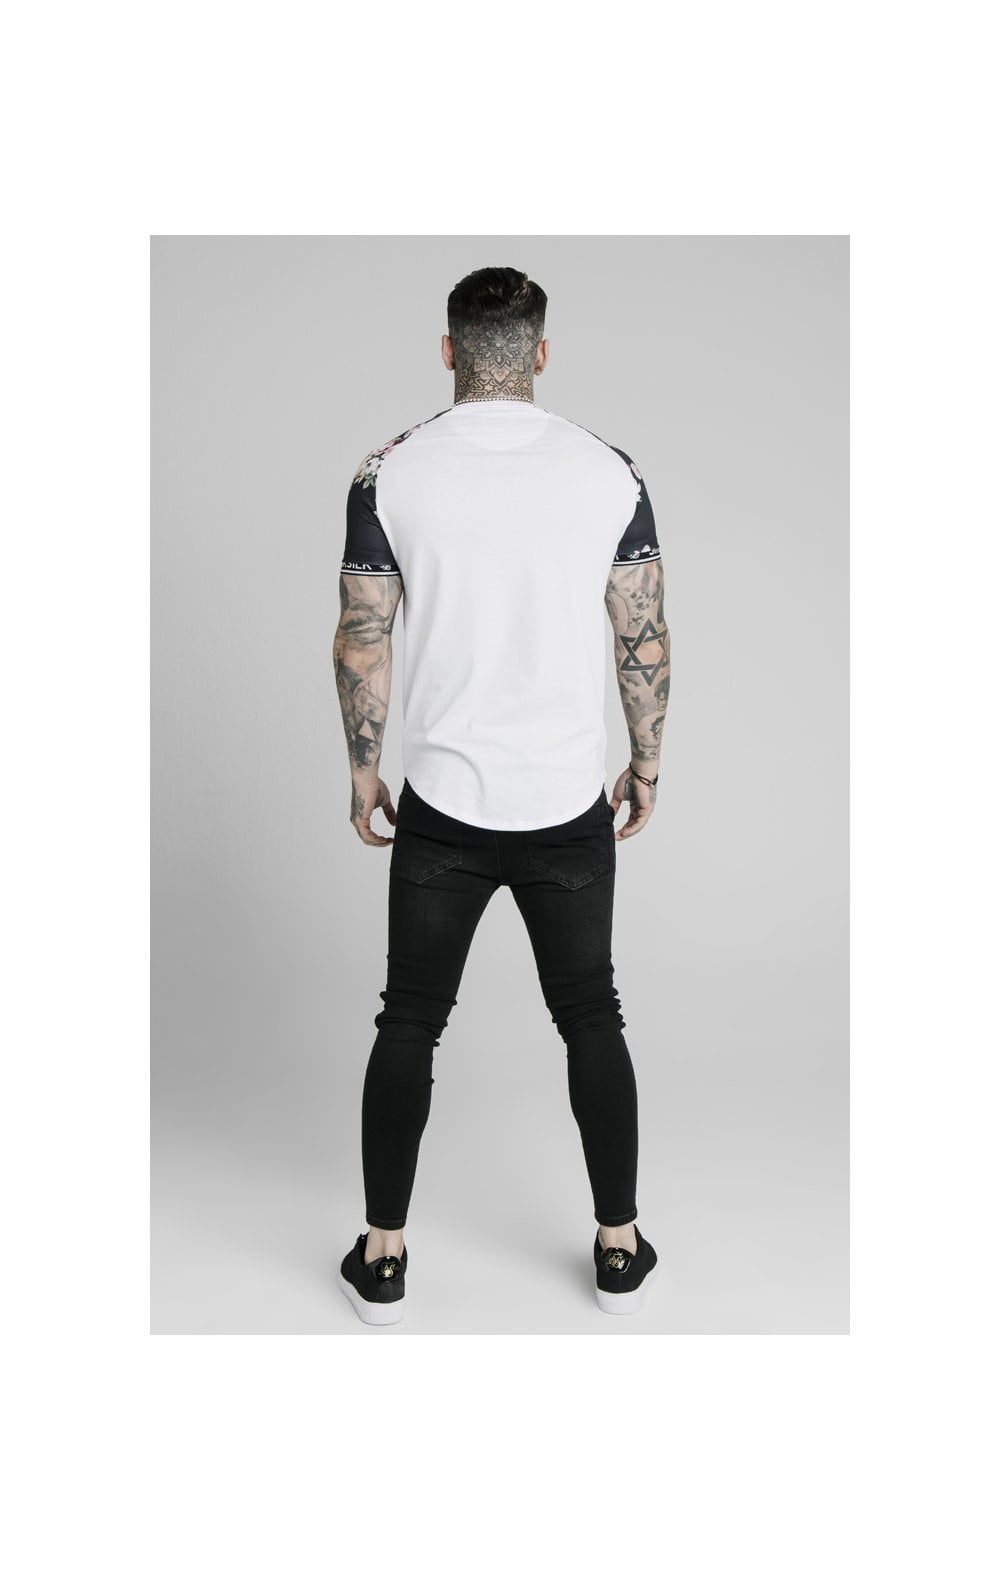 SikSilk S/S Prestige Floral Inset Tech Tee - White (4)